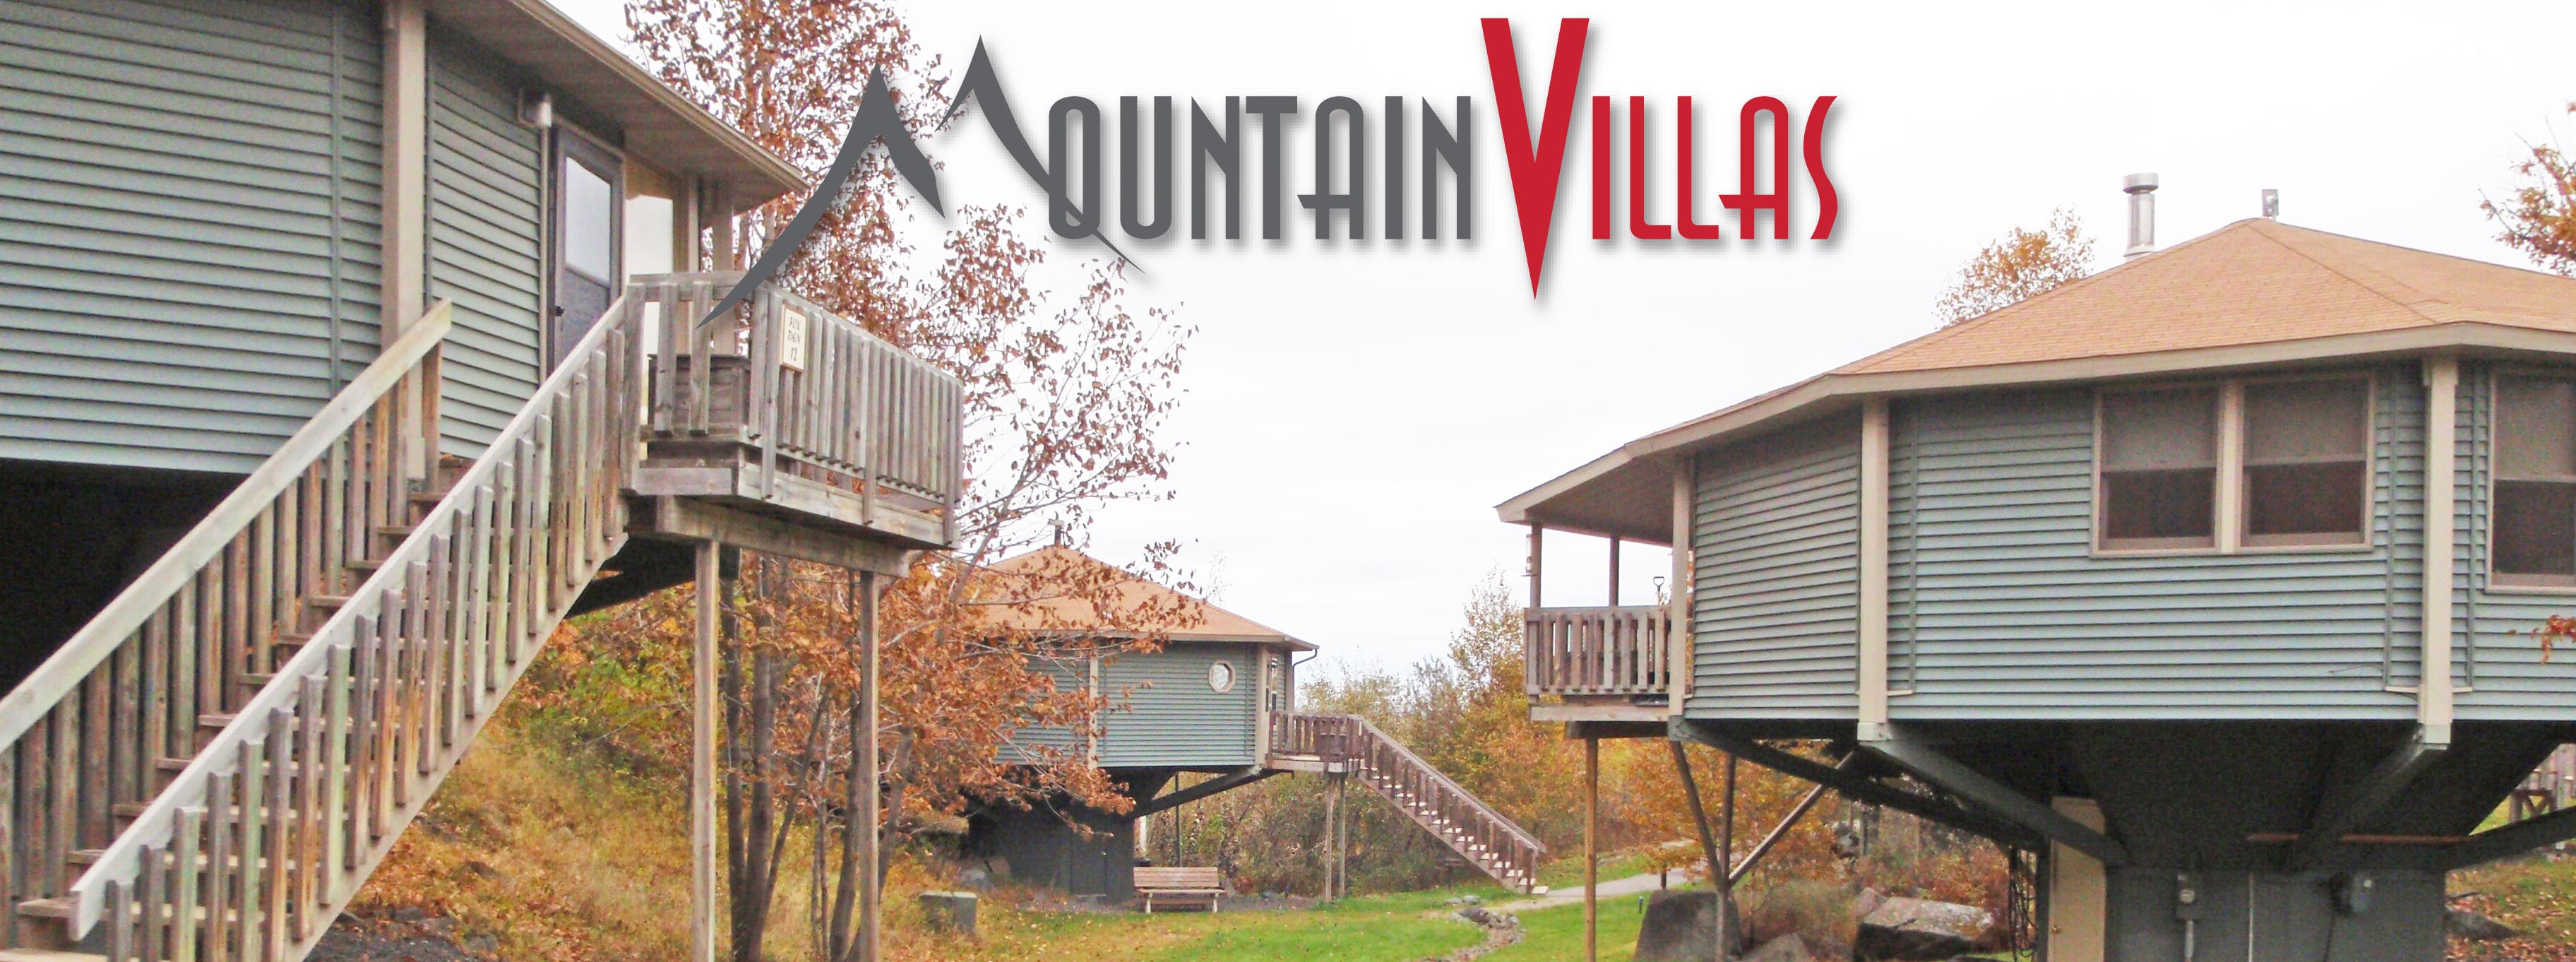 The villas at Mountain Villas are all individual units